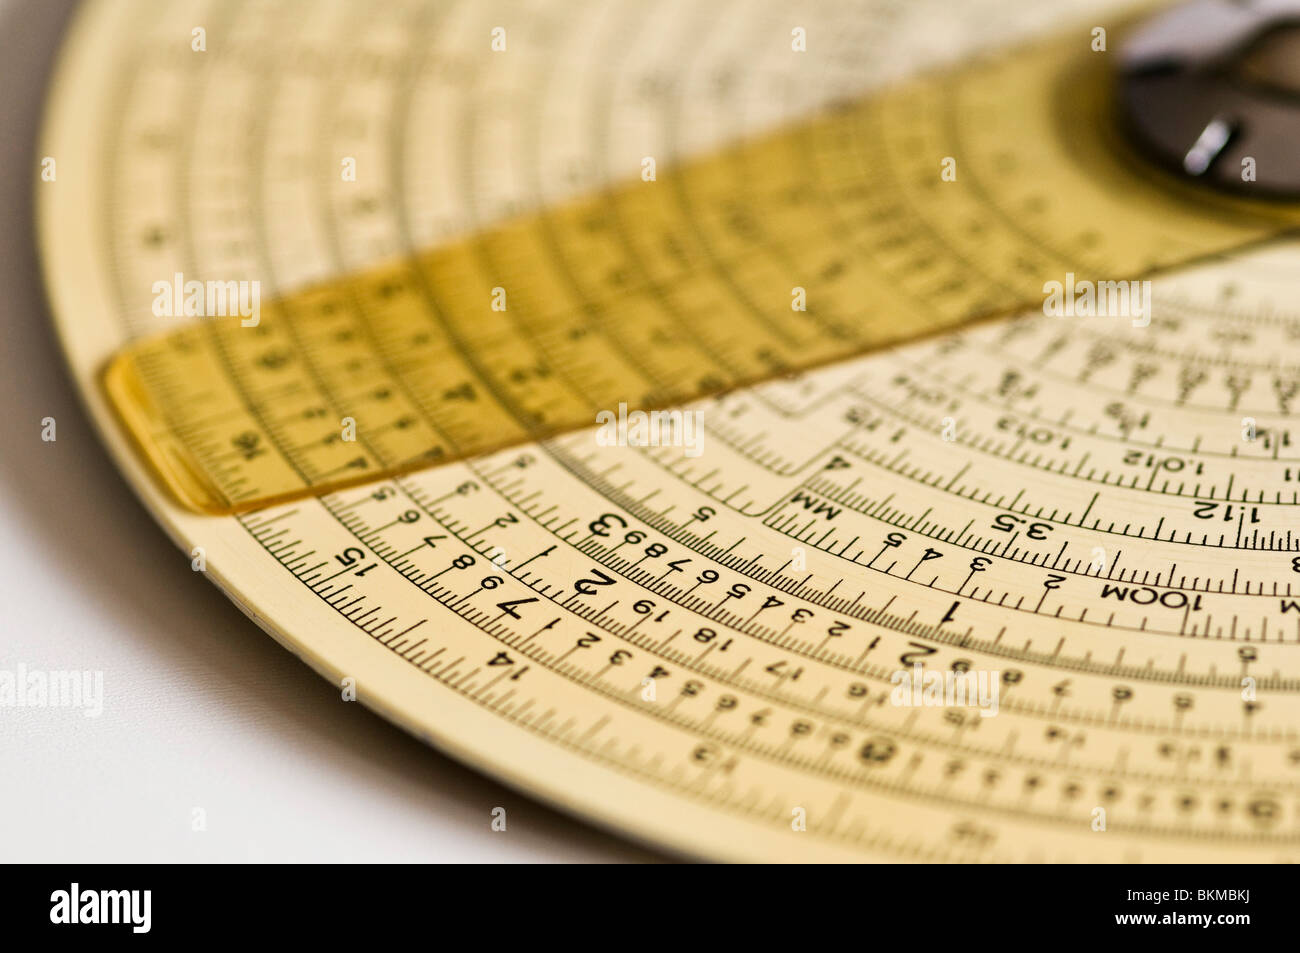 Concentric Binary Measuring Slide Ruler on white background. - Stock Image